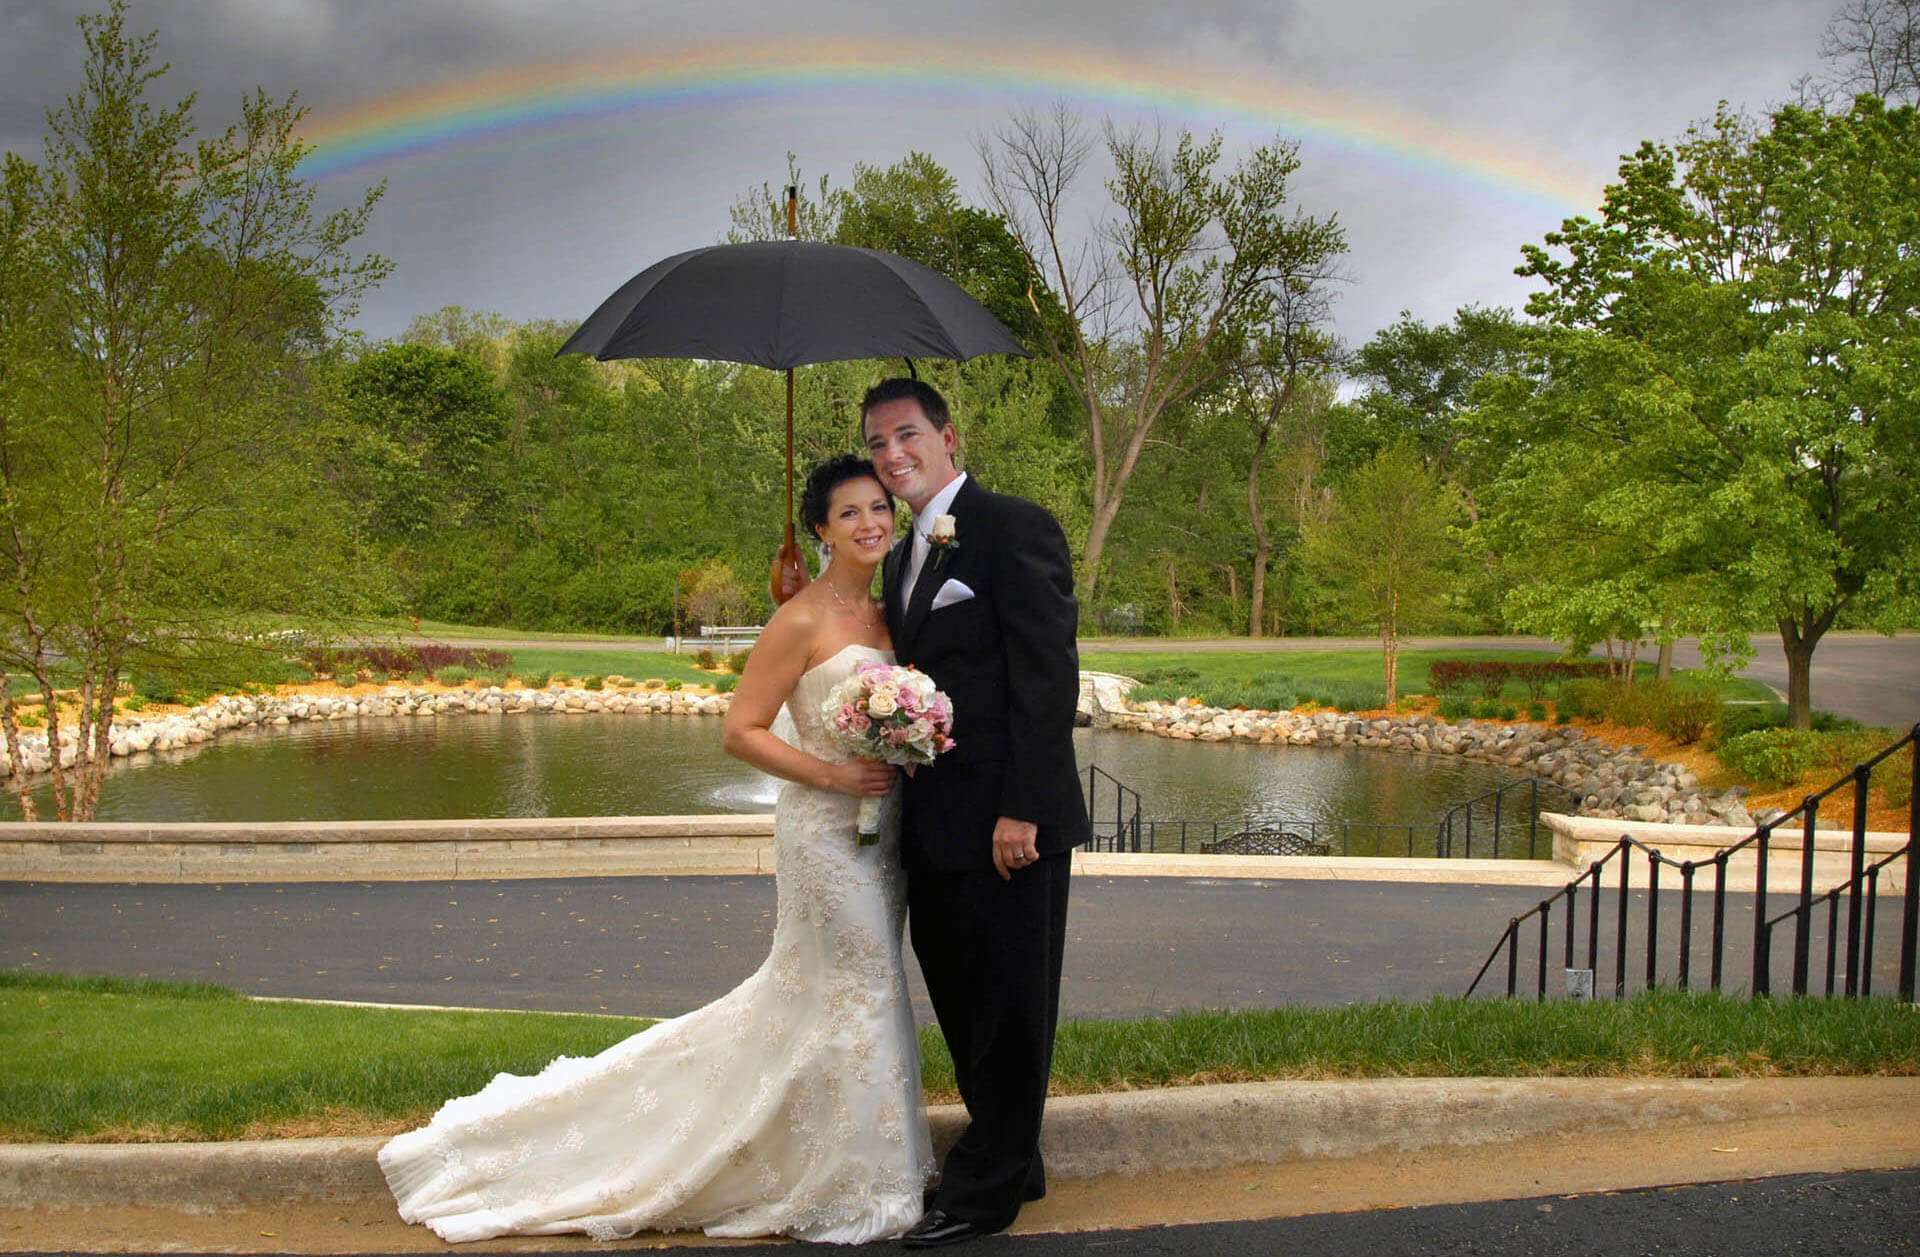 The bride and groom certainly started off their wedding with a lucky rainbow appearing just after their St. Hugo of the Hills wedding in Bloomfield, Michigan.